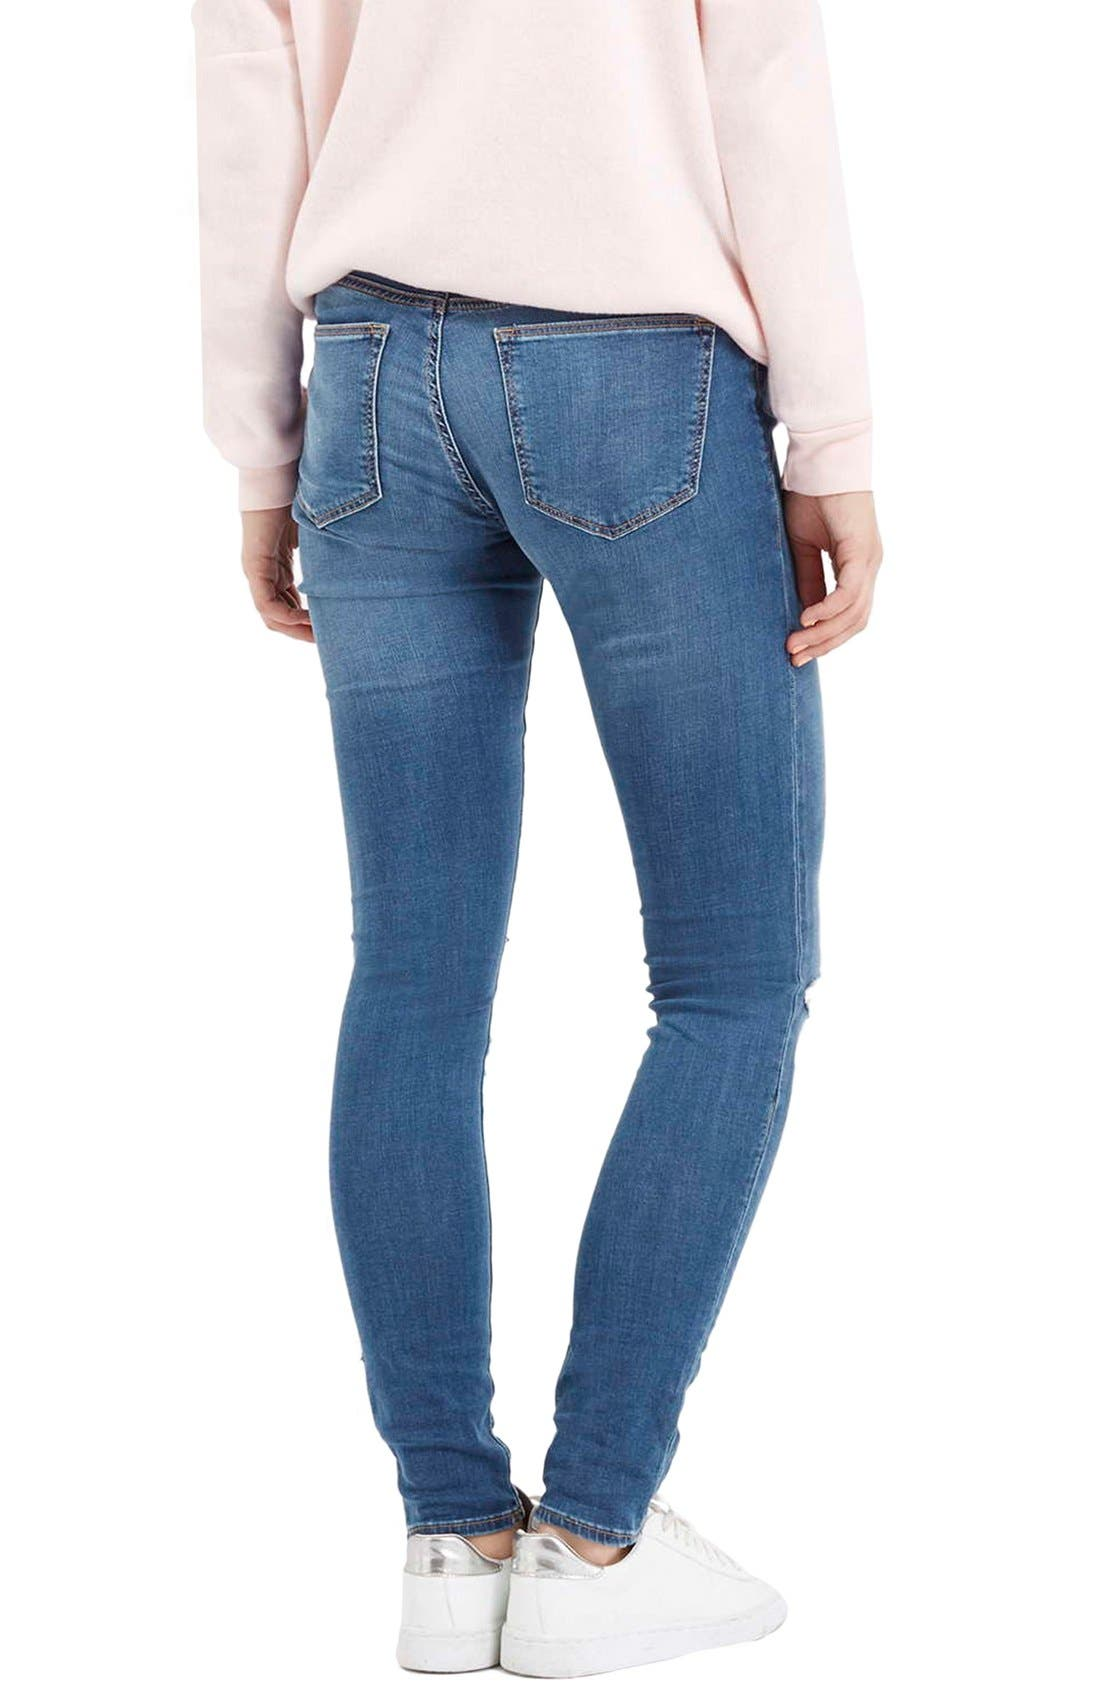 Moto 'Leigh' Ripped Skinny Jeans,                             Alternate thumbnail 3, color,                             400